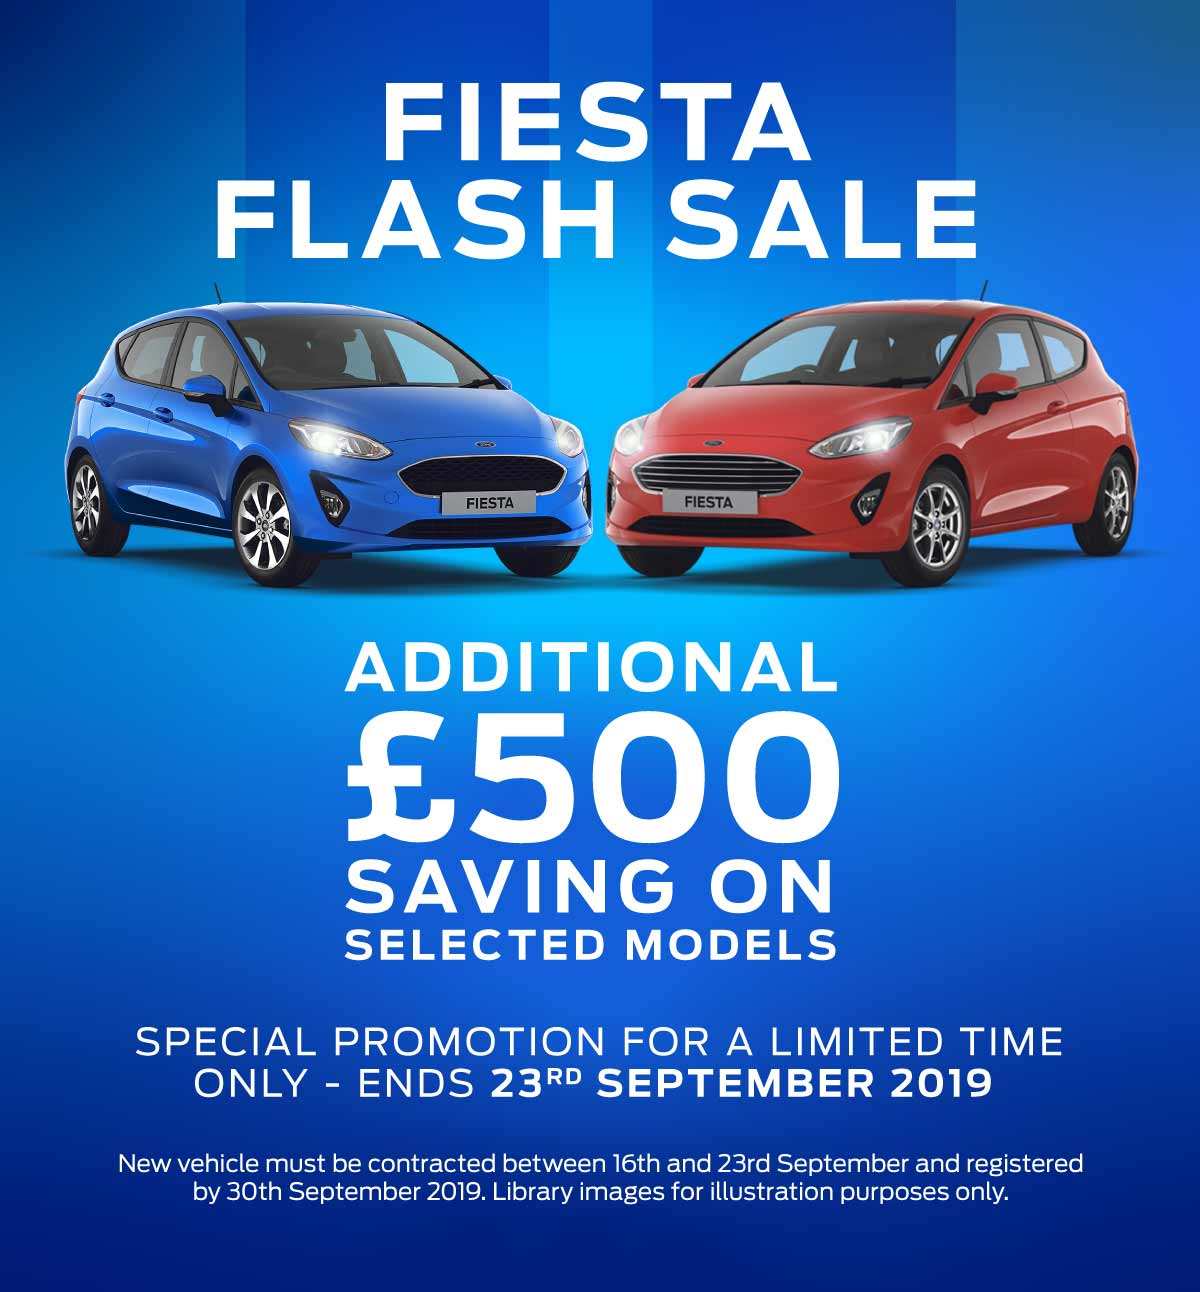 (Ford Fiesta) Ford Fiesta Flash Sale Banner 1 160919